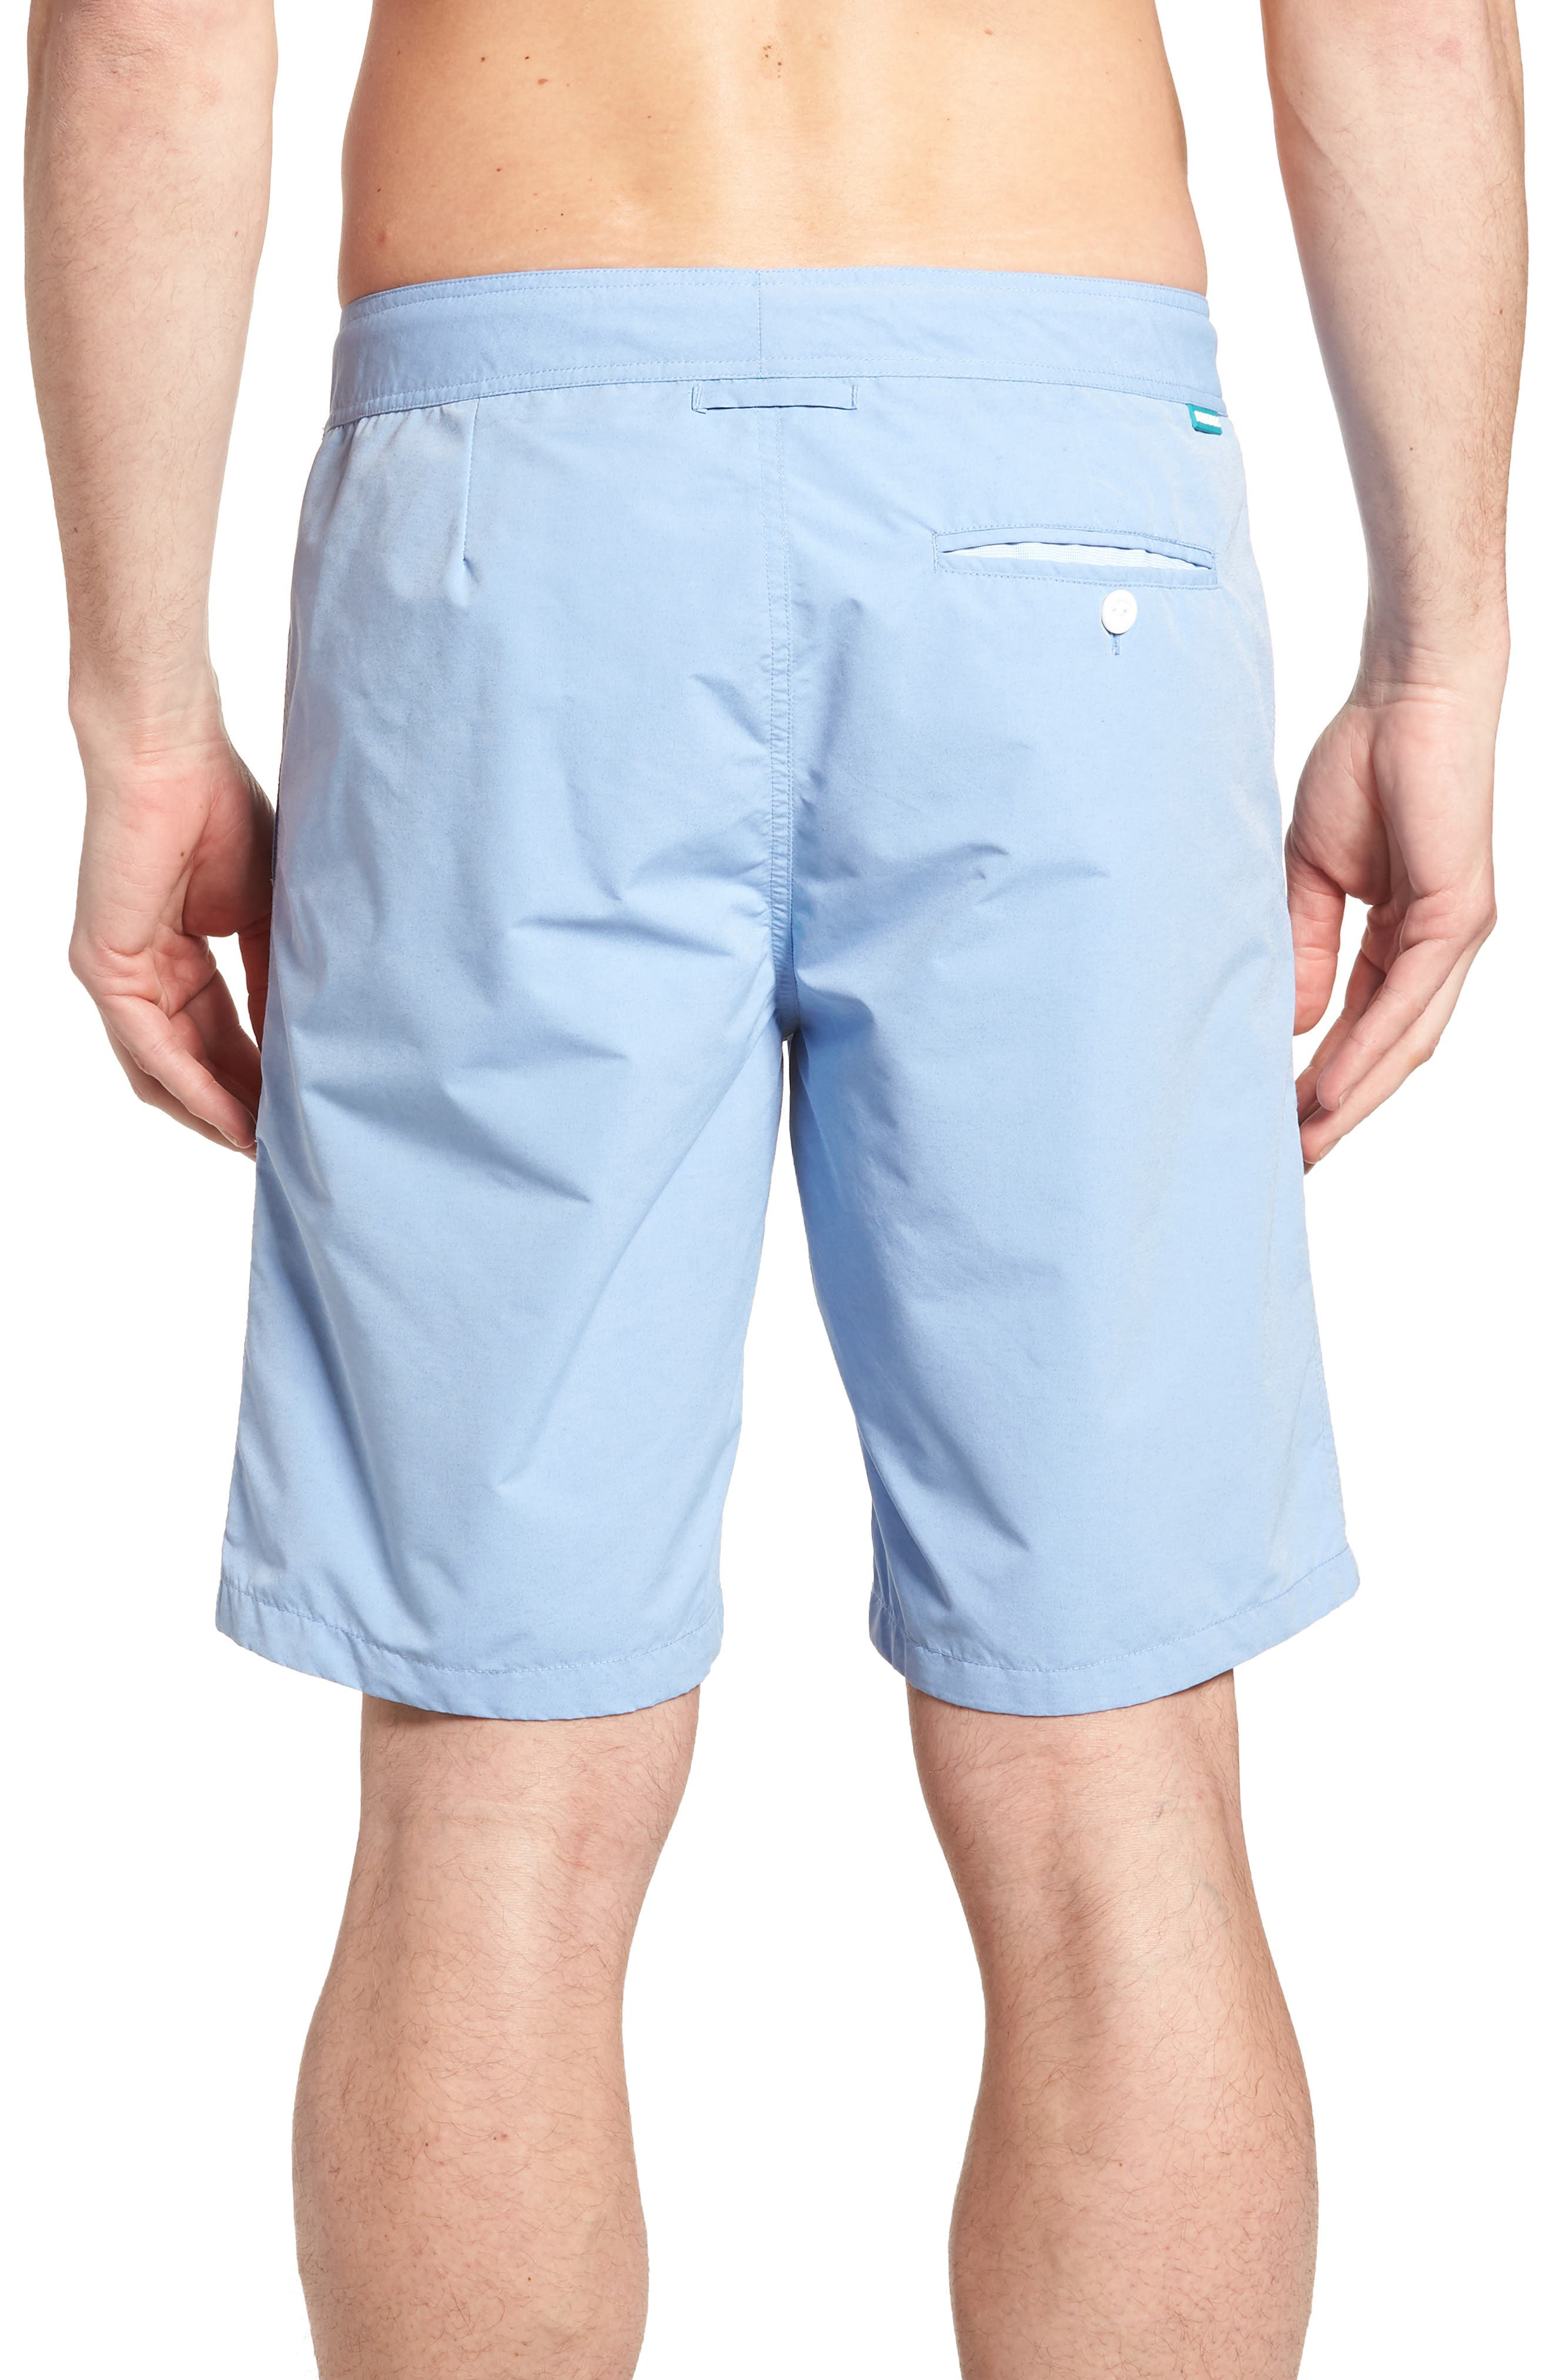 Banzai 9-Inch Swim Trunks,                             Alternate thumbnail 2, color,